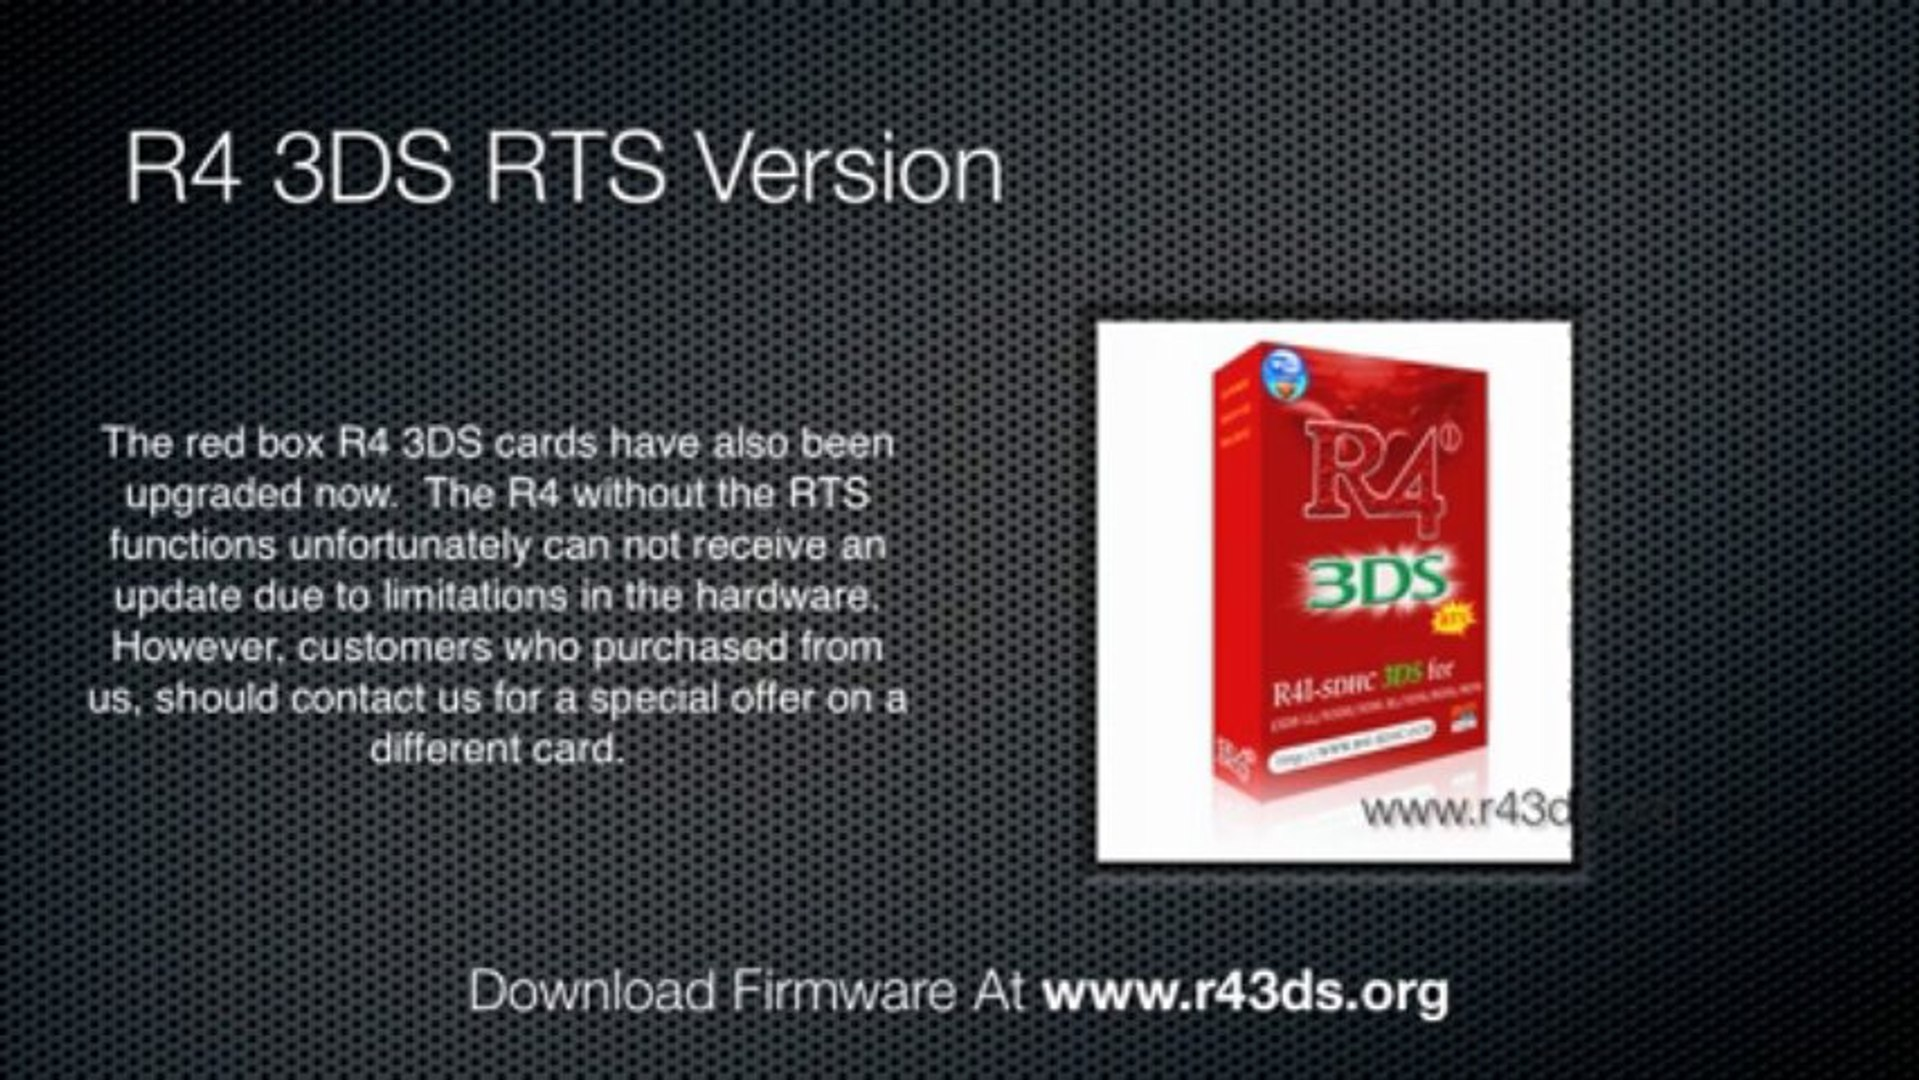 R4 3DS Updated For 6 2 0 Nintendo 3DS and Nintendo 3DS XL Systems